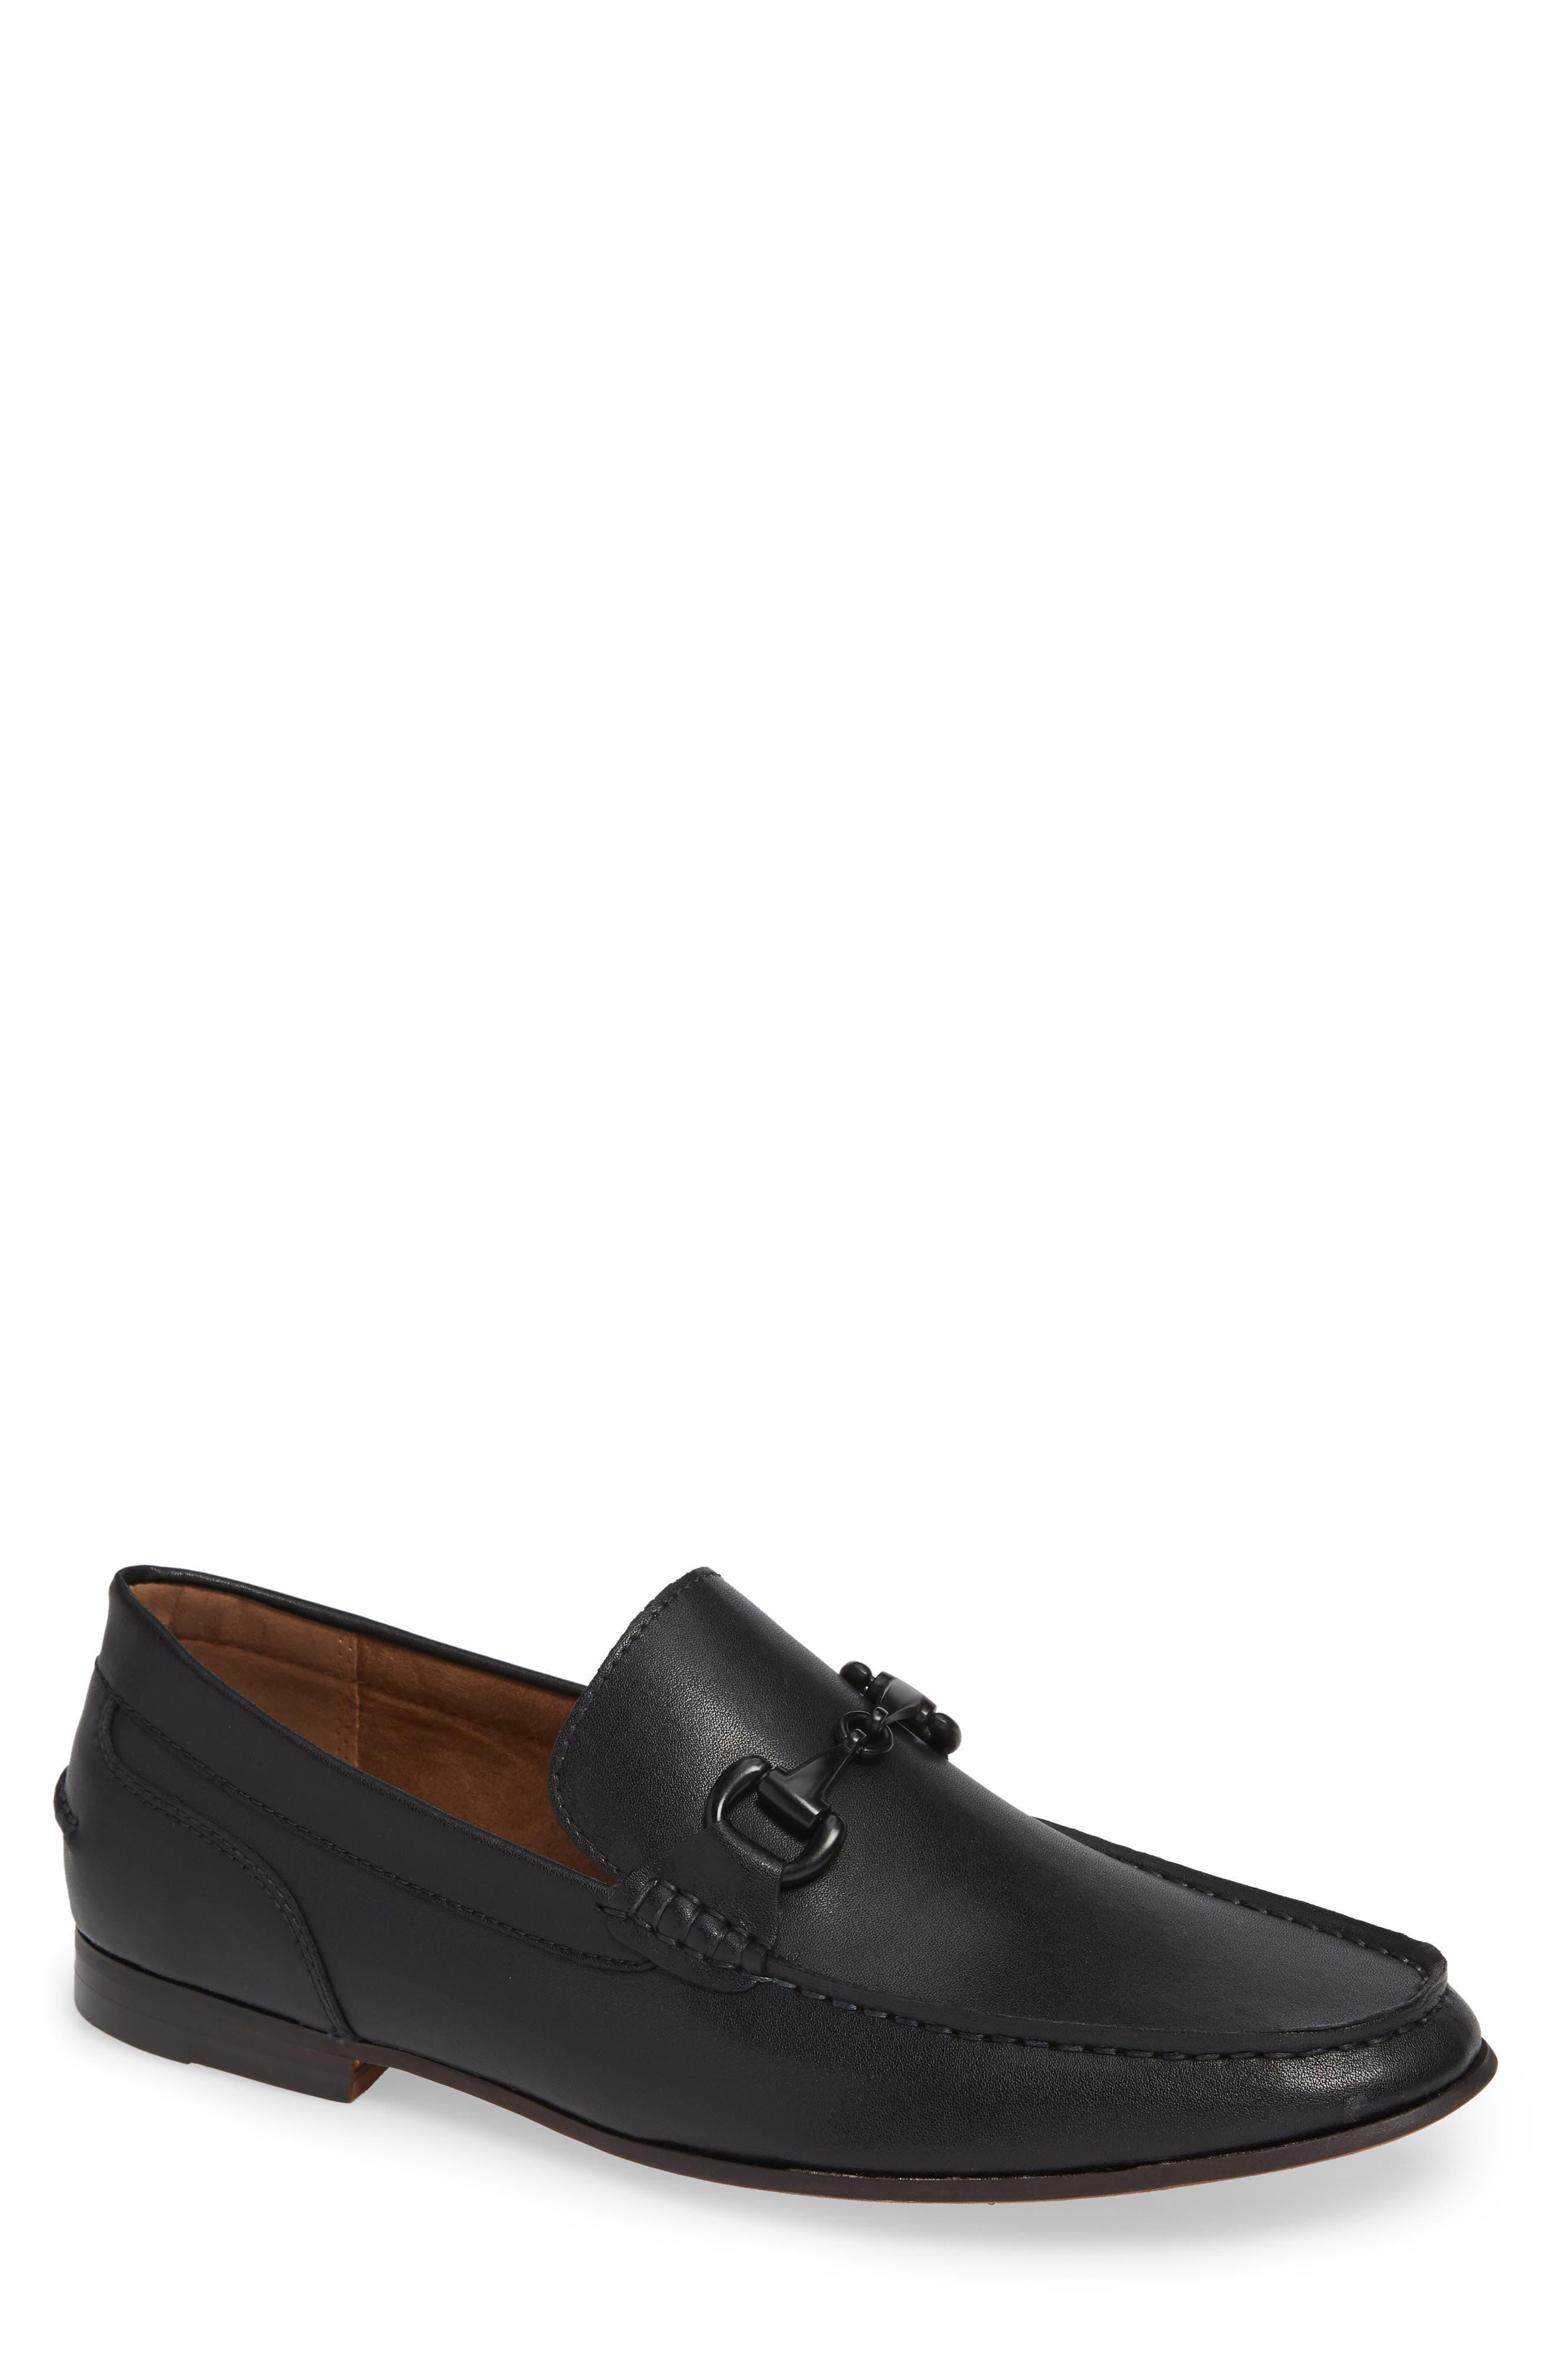 Crespo Loafer,                         Main,                         color, BLACK SYNTHETIC LEATHER